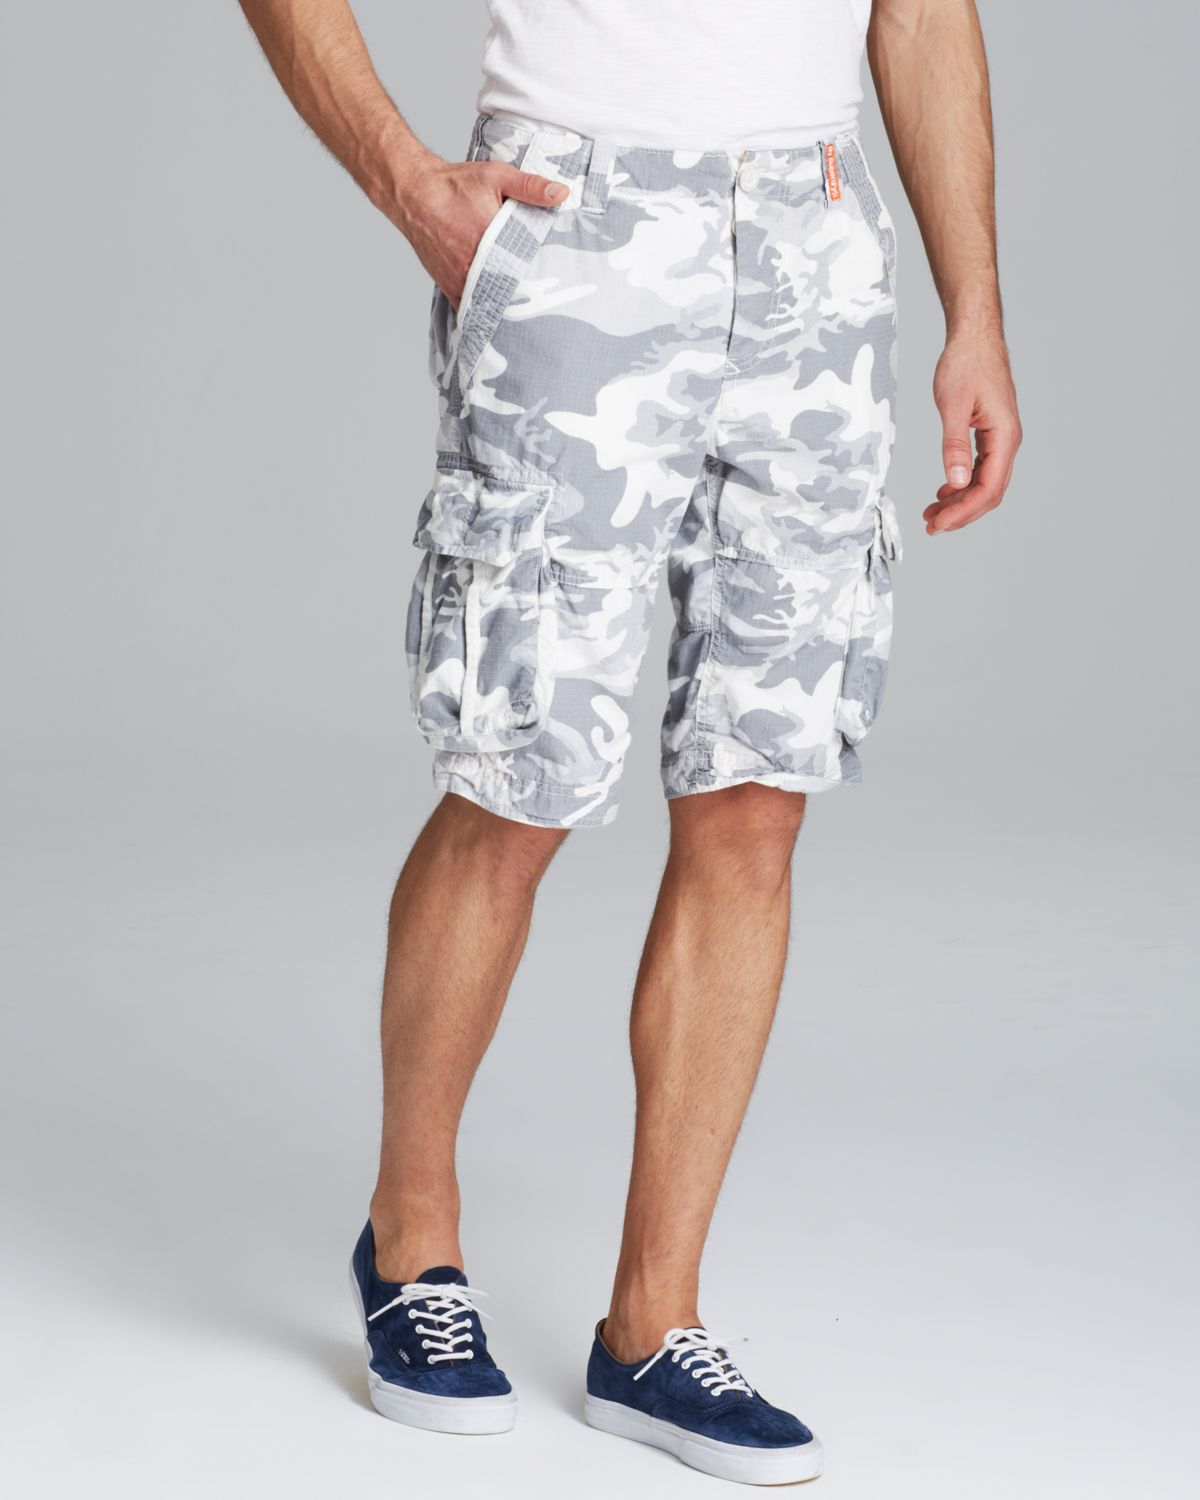 eb7239f335 Superdry Camo Ripstop Shorts in Gray for Men - Lyst